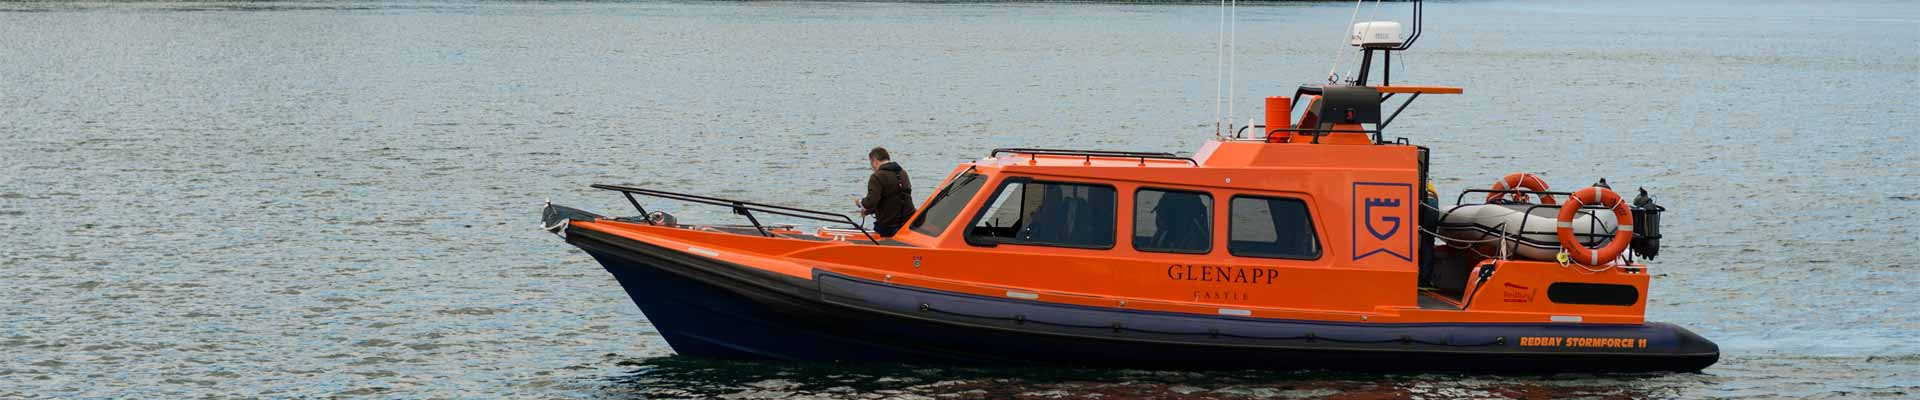 Photo of Glenapp Castle's boat, which you can use!